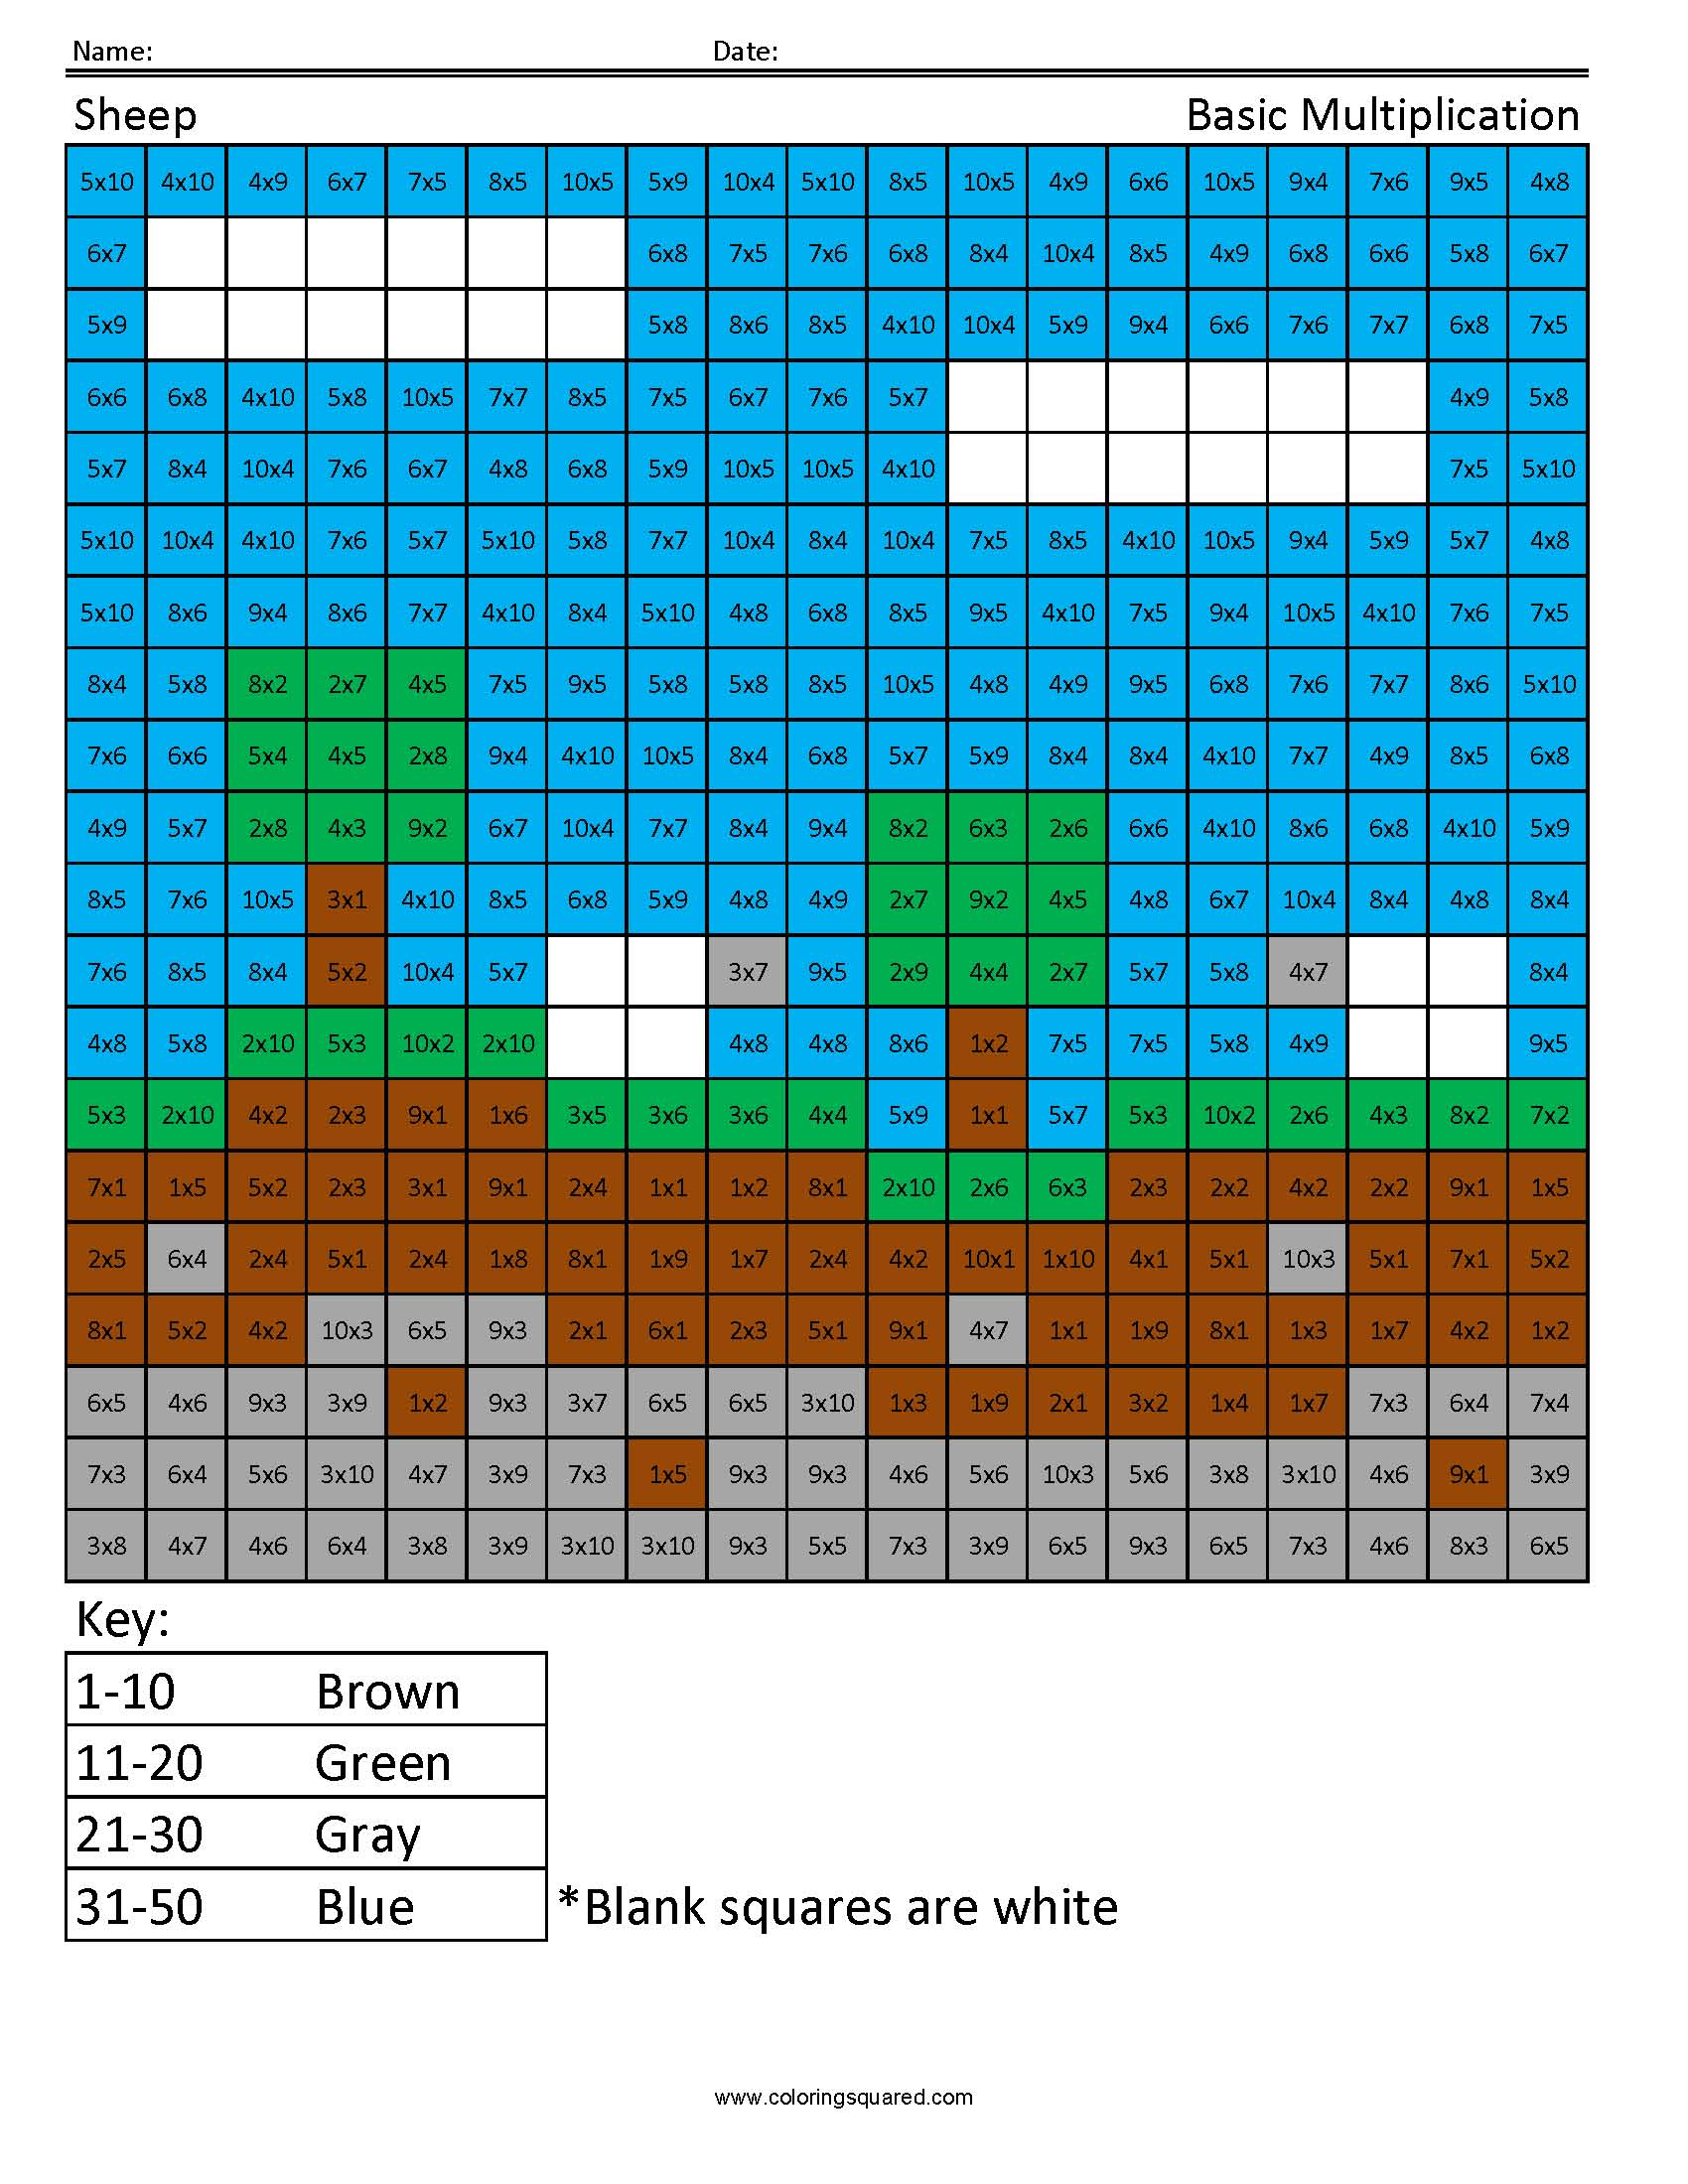 Sheep Scene- Basic Multiplication - Coloring Squared